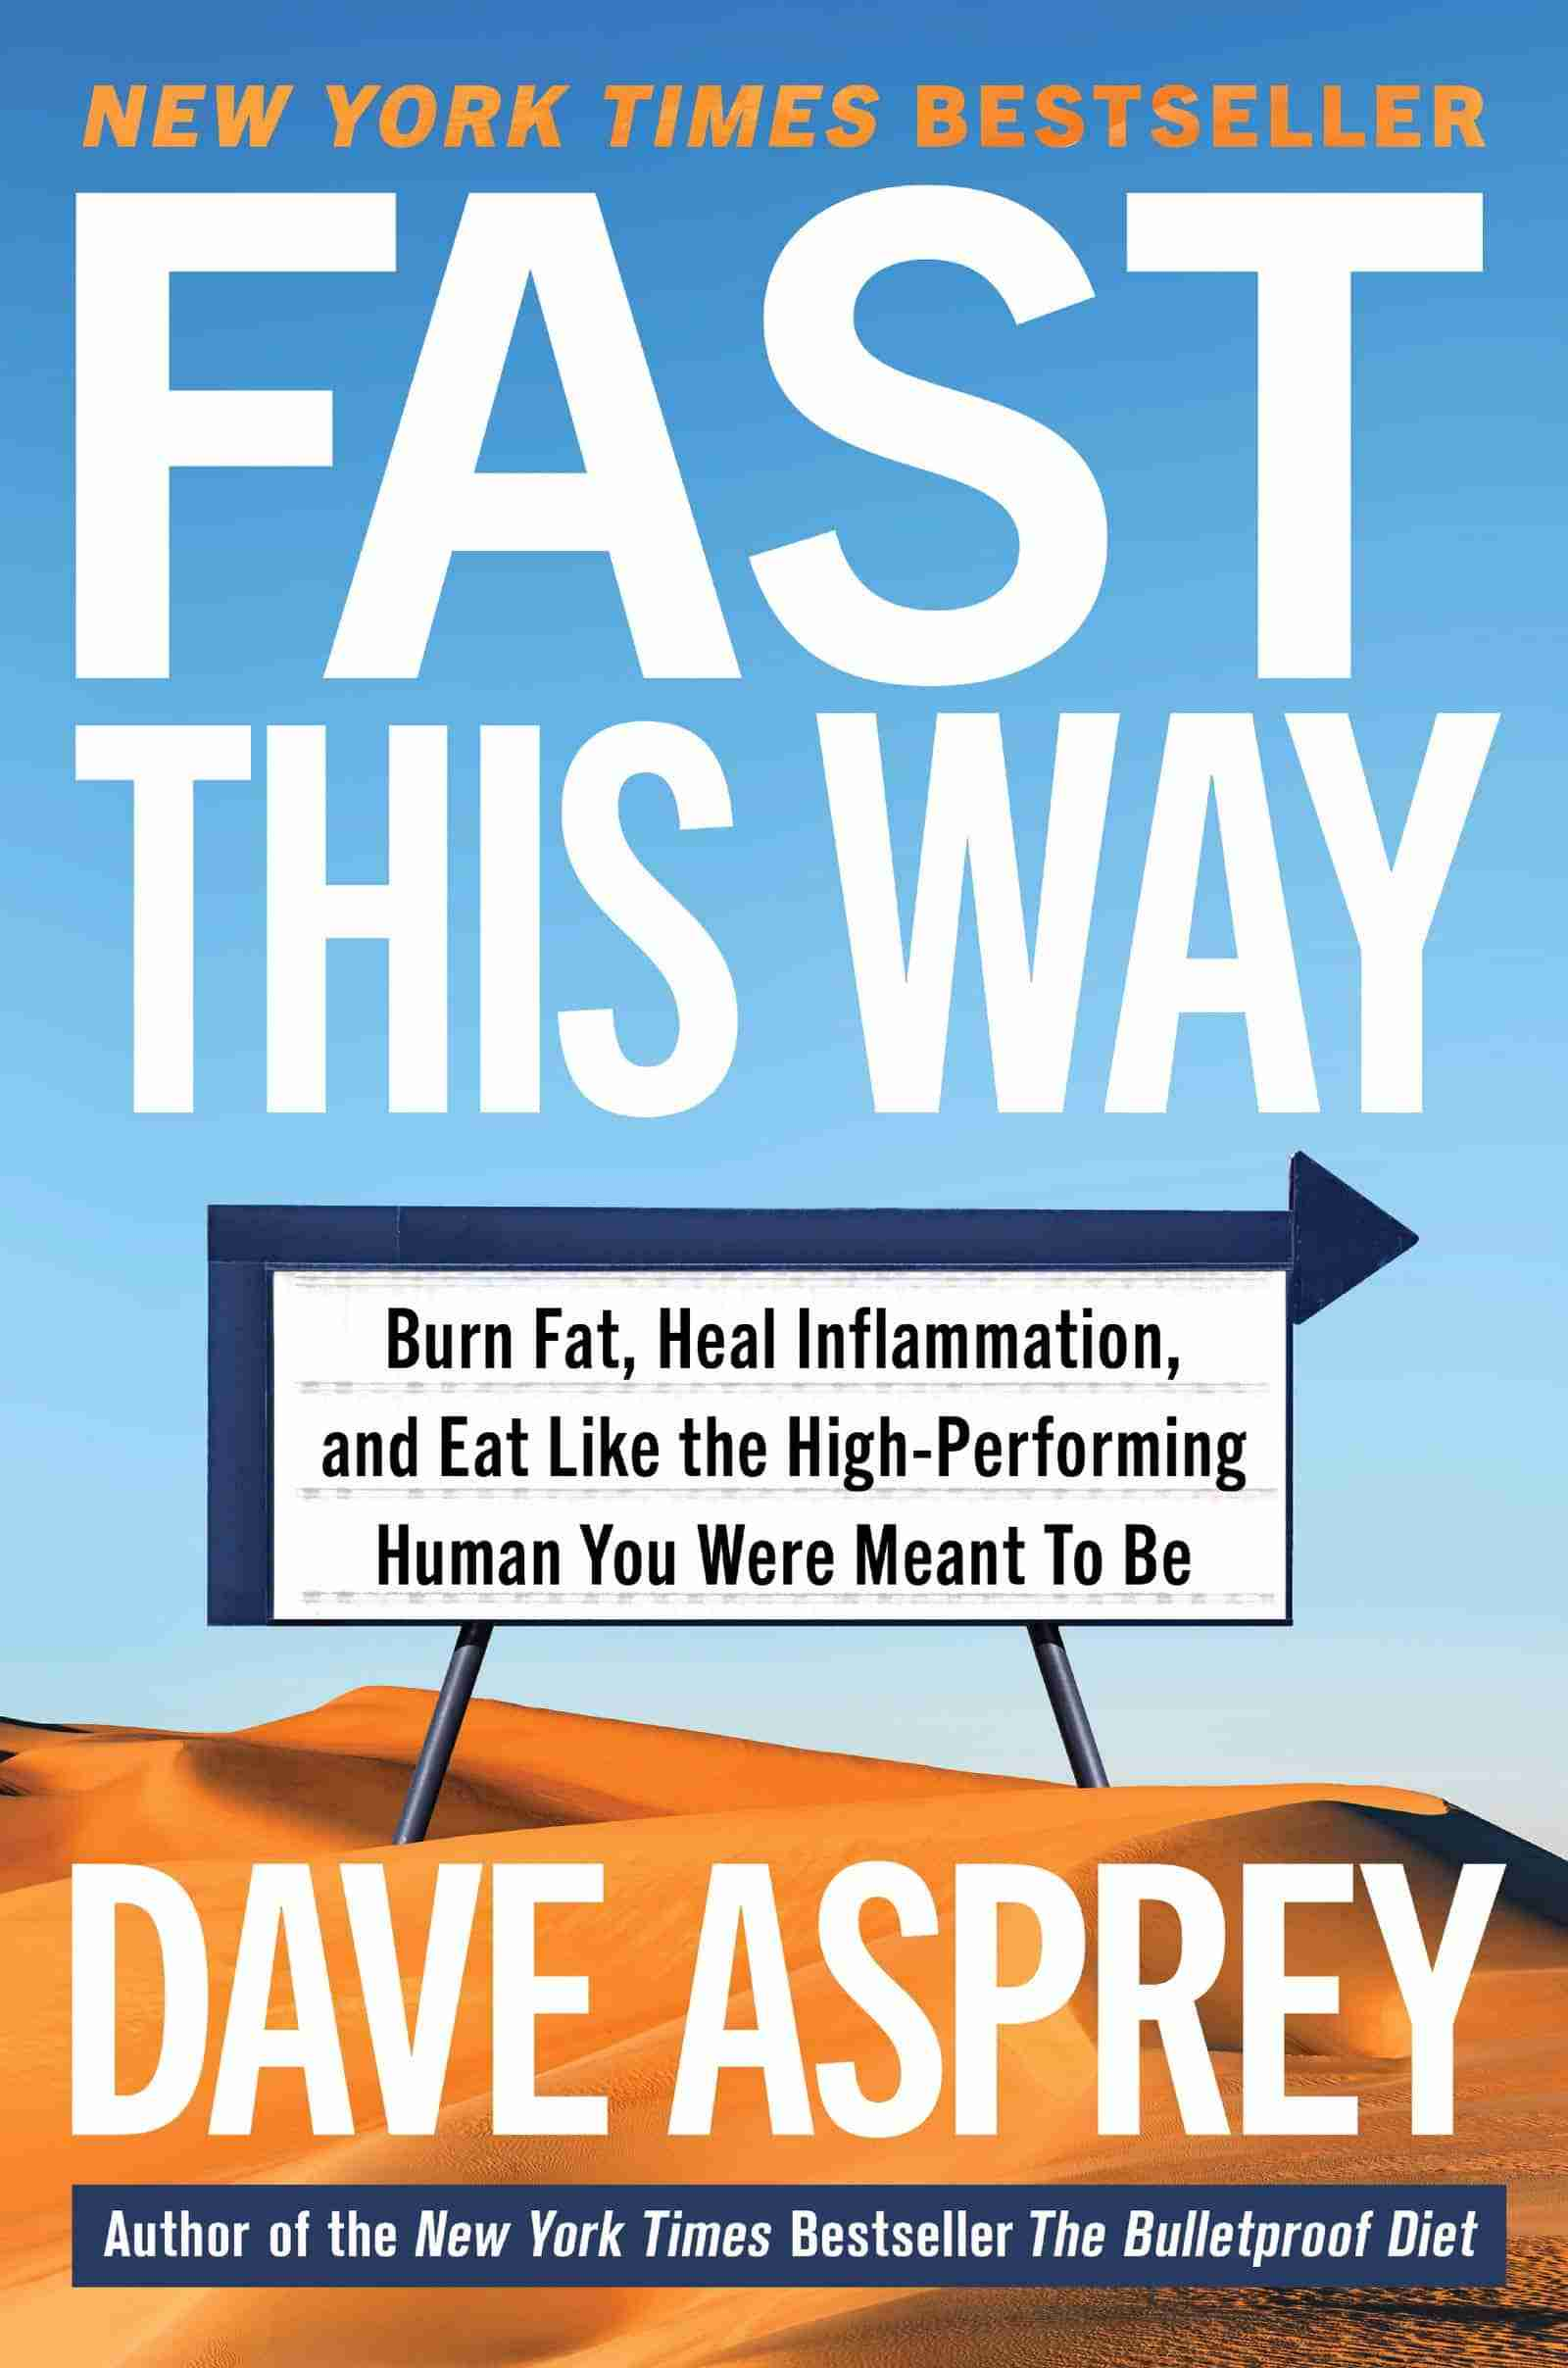 Boost metabolism book about intermittent fasting